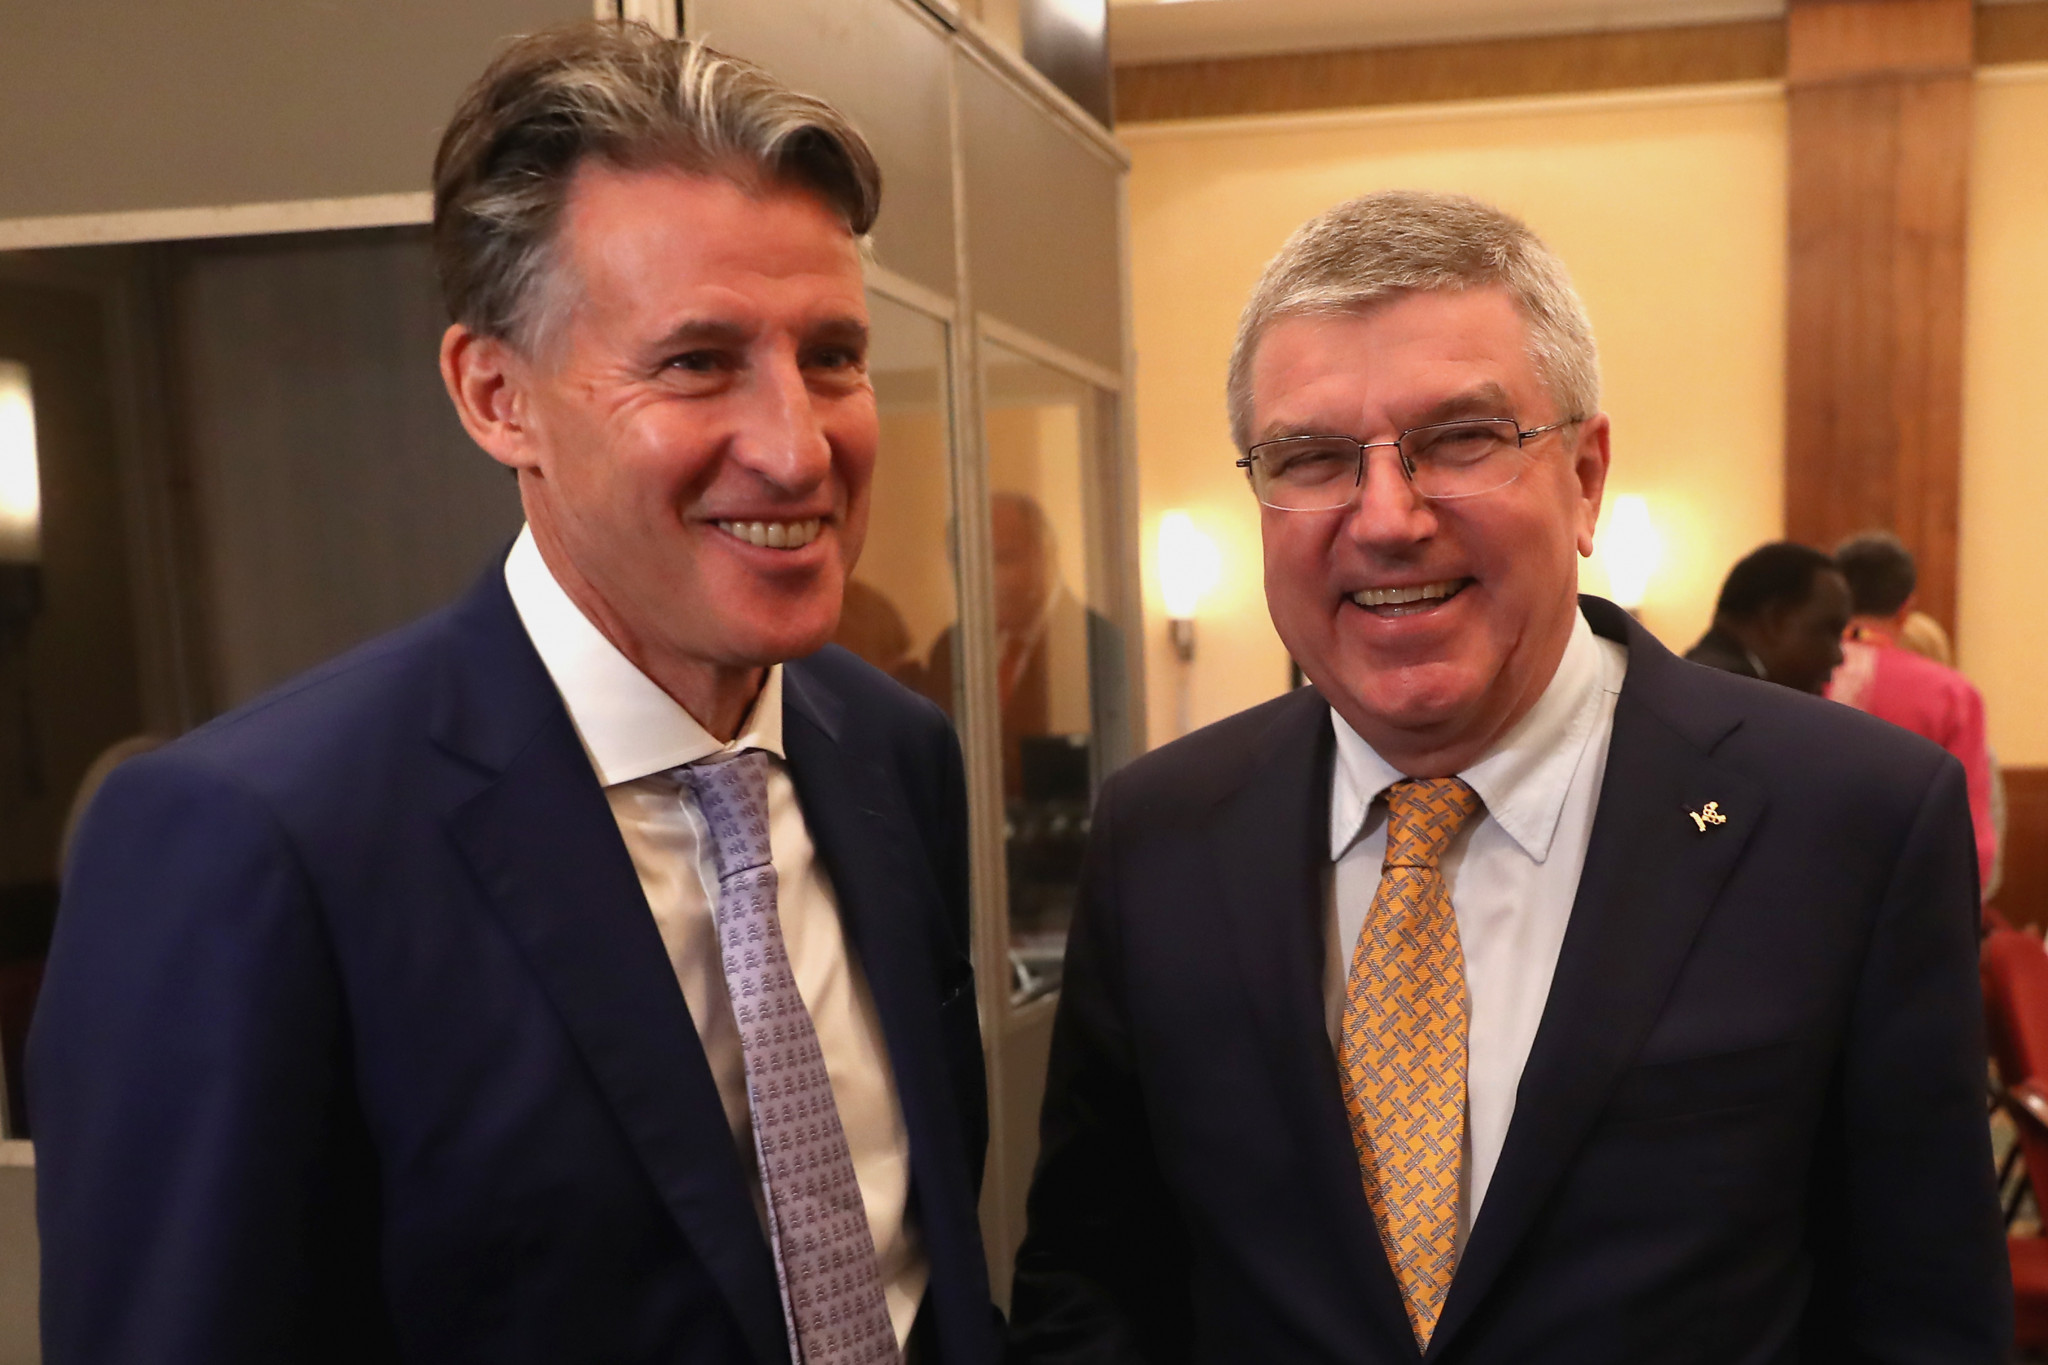 The relationship between Sebastian Coe, left and Thomas Bach, right is worth a keeping an eye on ©Getty Images